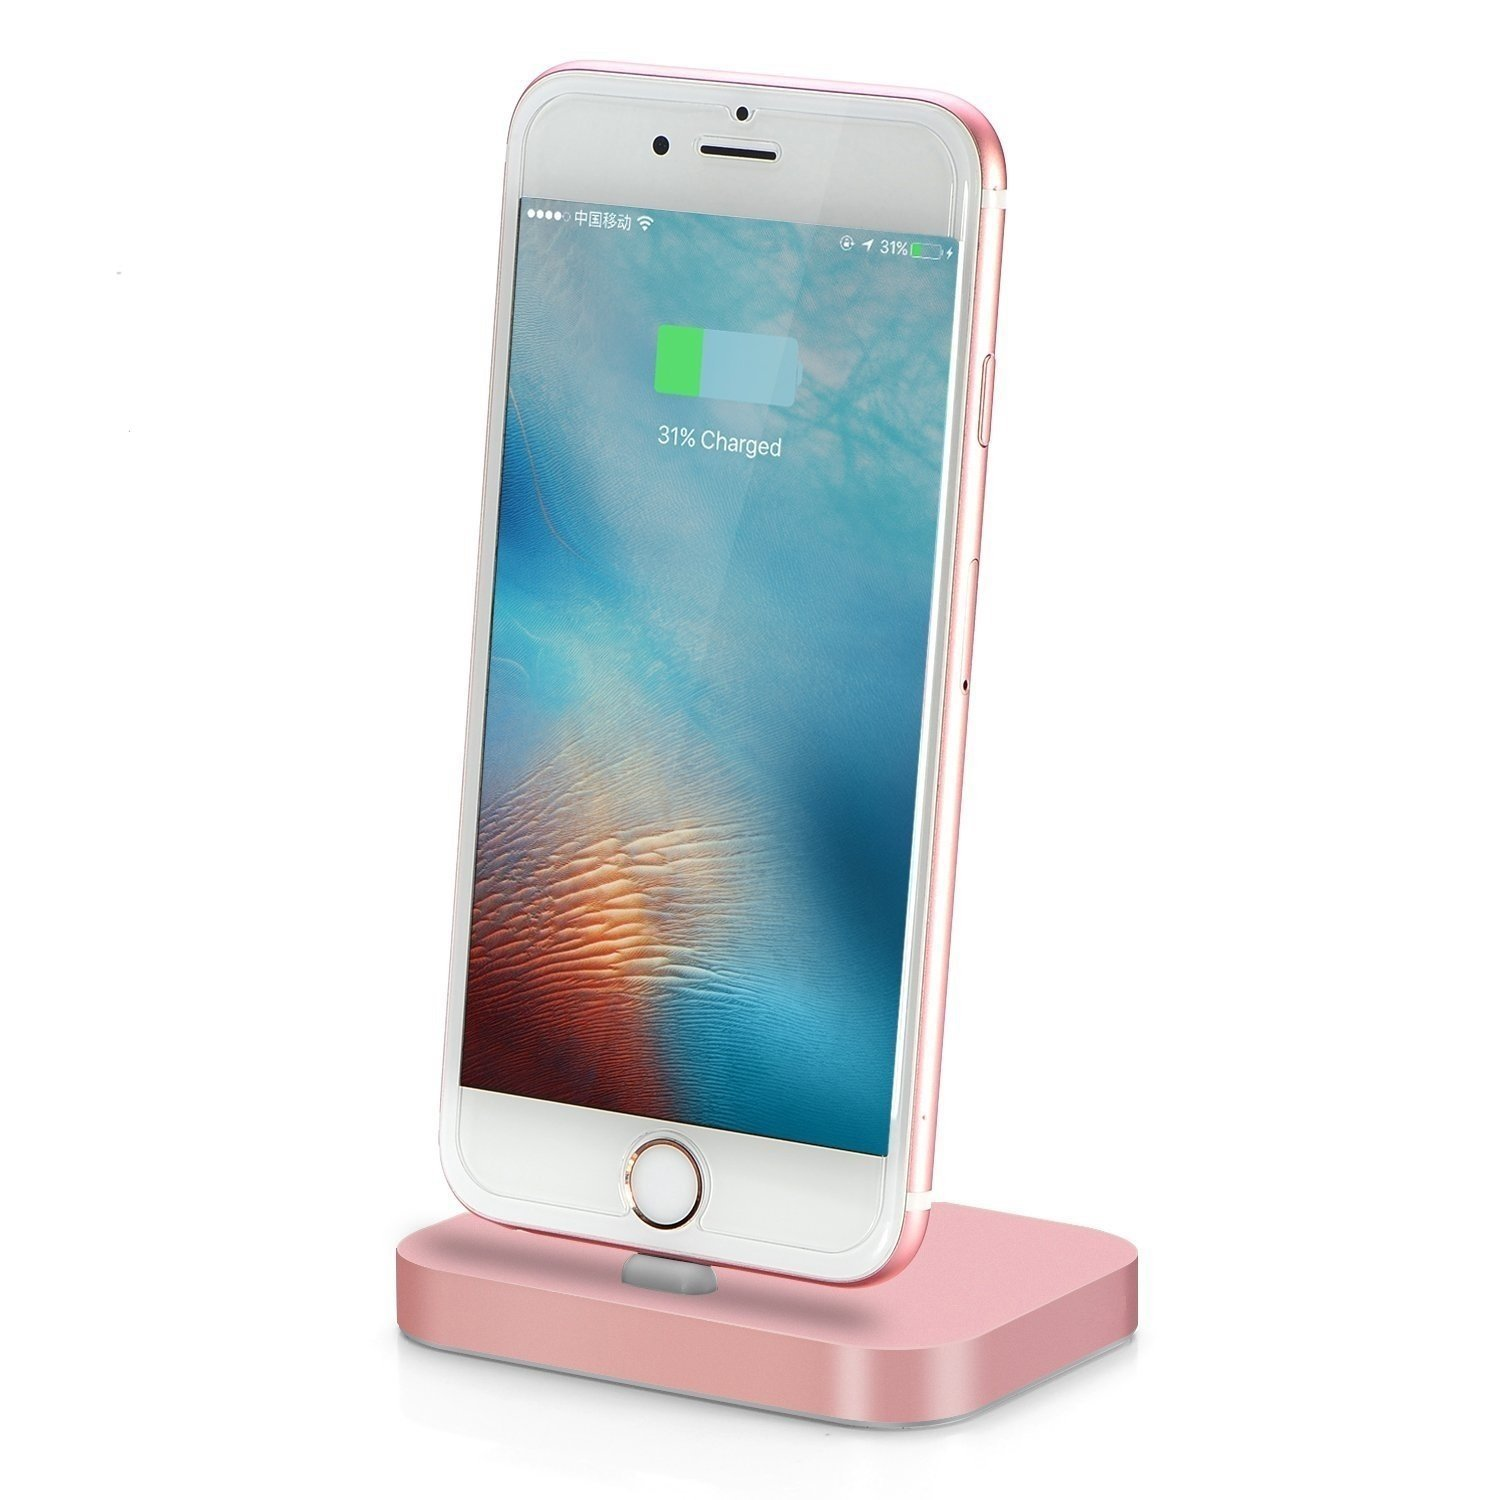 low priced 70507 b2ff1 Cheap Lightning Iphone Dock, find Lightning Iphone Dock deals on ...